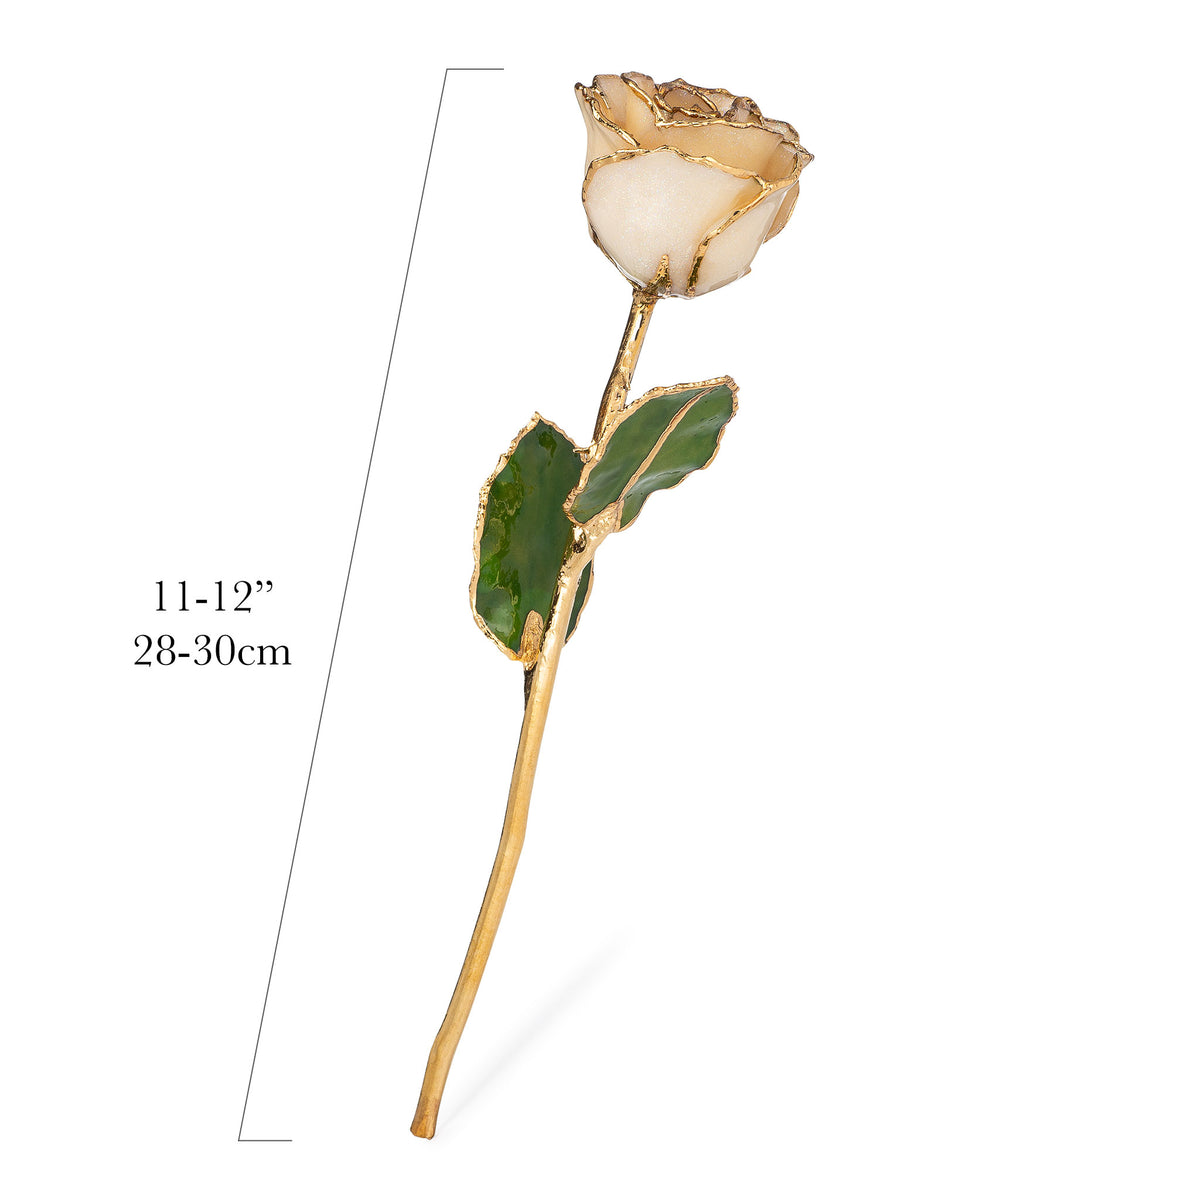 24K Gold Trimmed Forever Rose with Diamond Petals with Sparkles. View of Stem, Leaves, and Rose Petals and Showing Detail of Gold Trim showing measurements